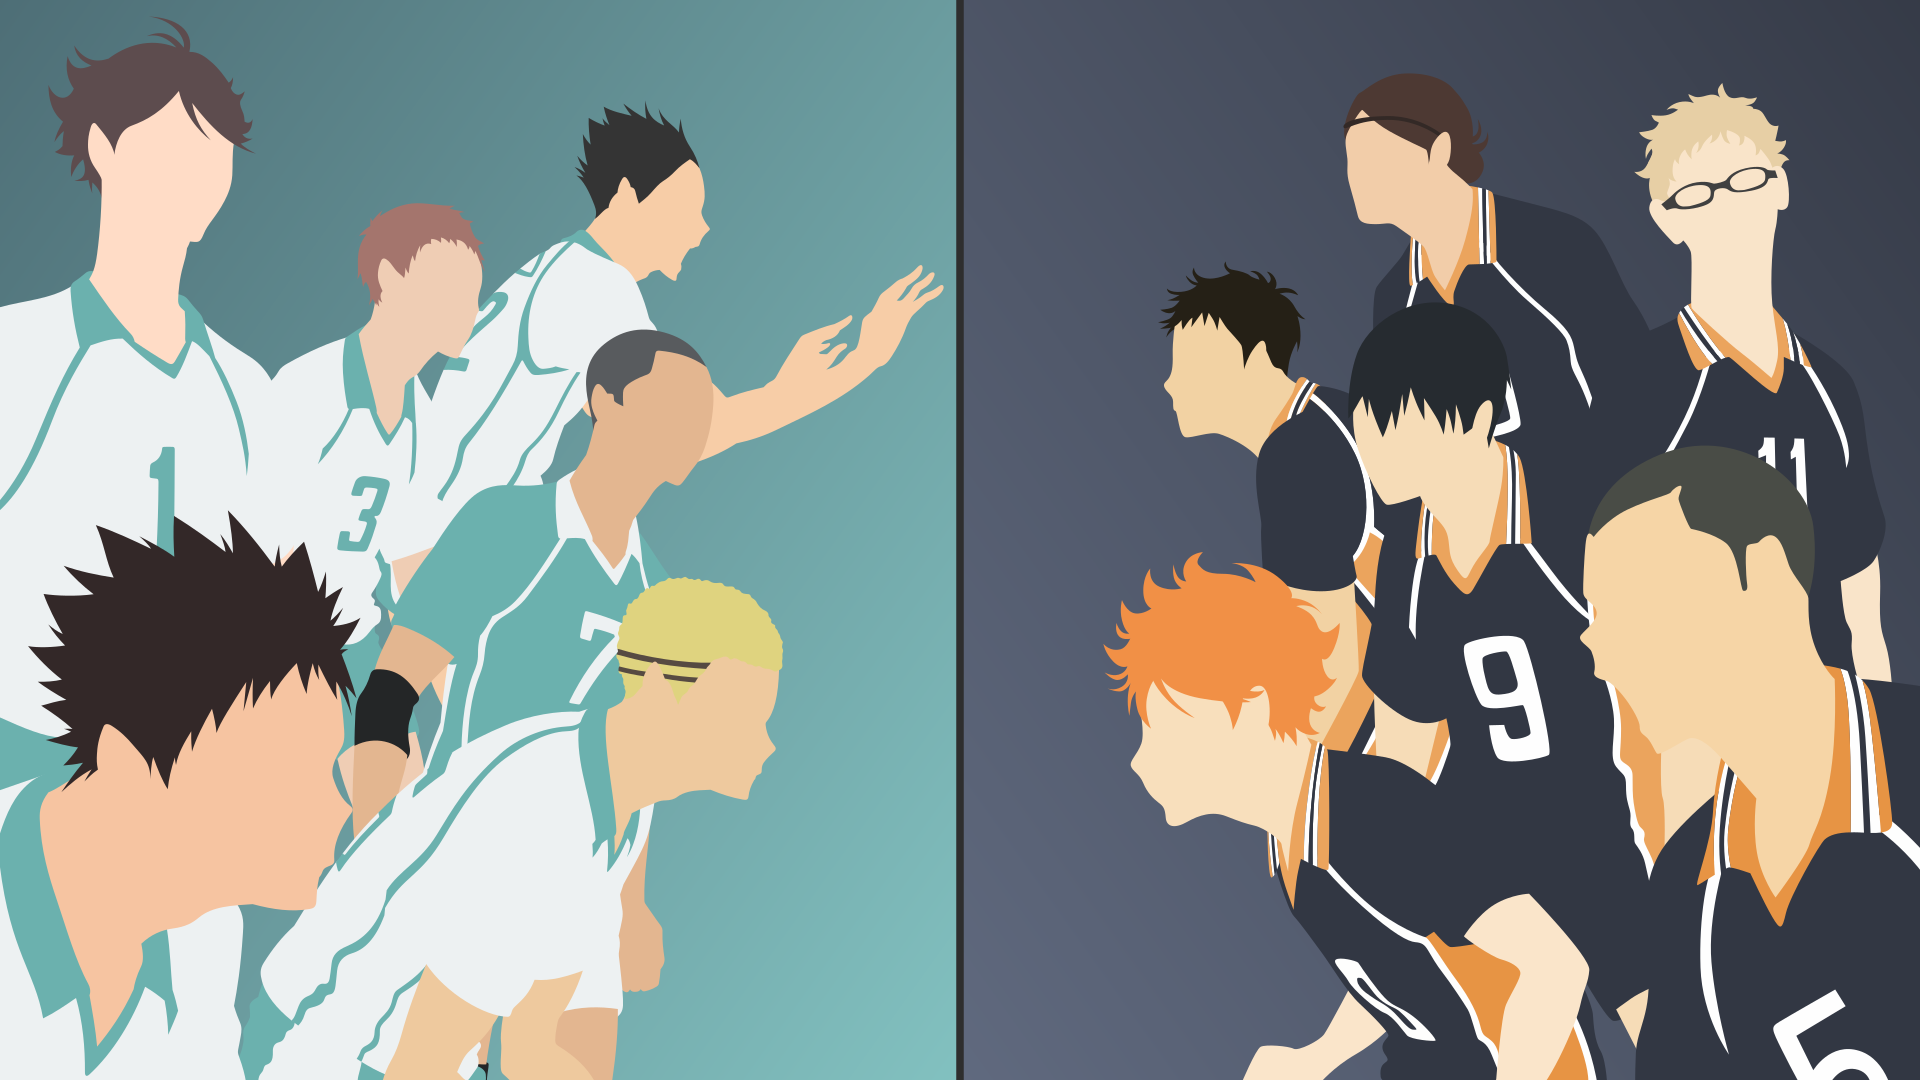 Haikyuu Hd Wallpaper For Laptop Anime Wallpaper Hd